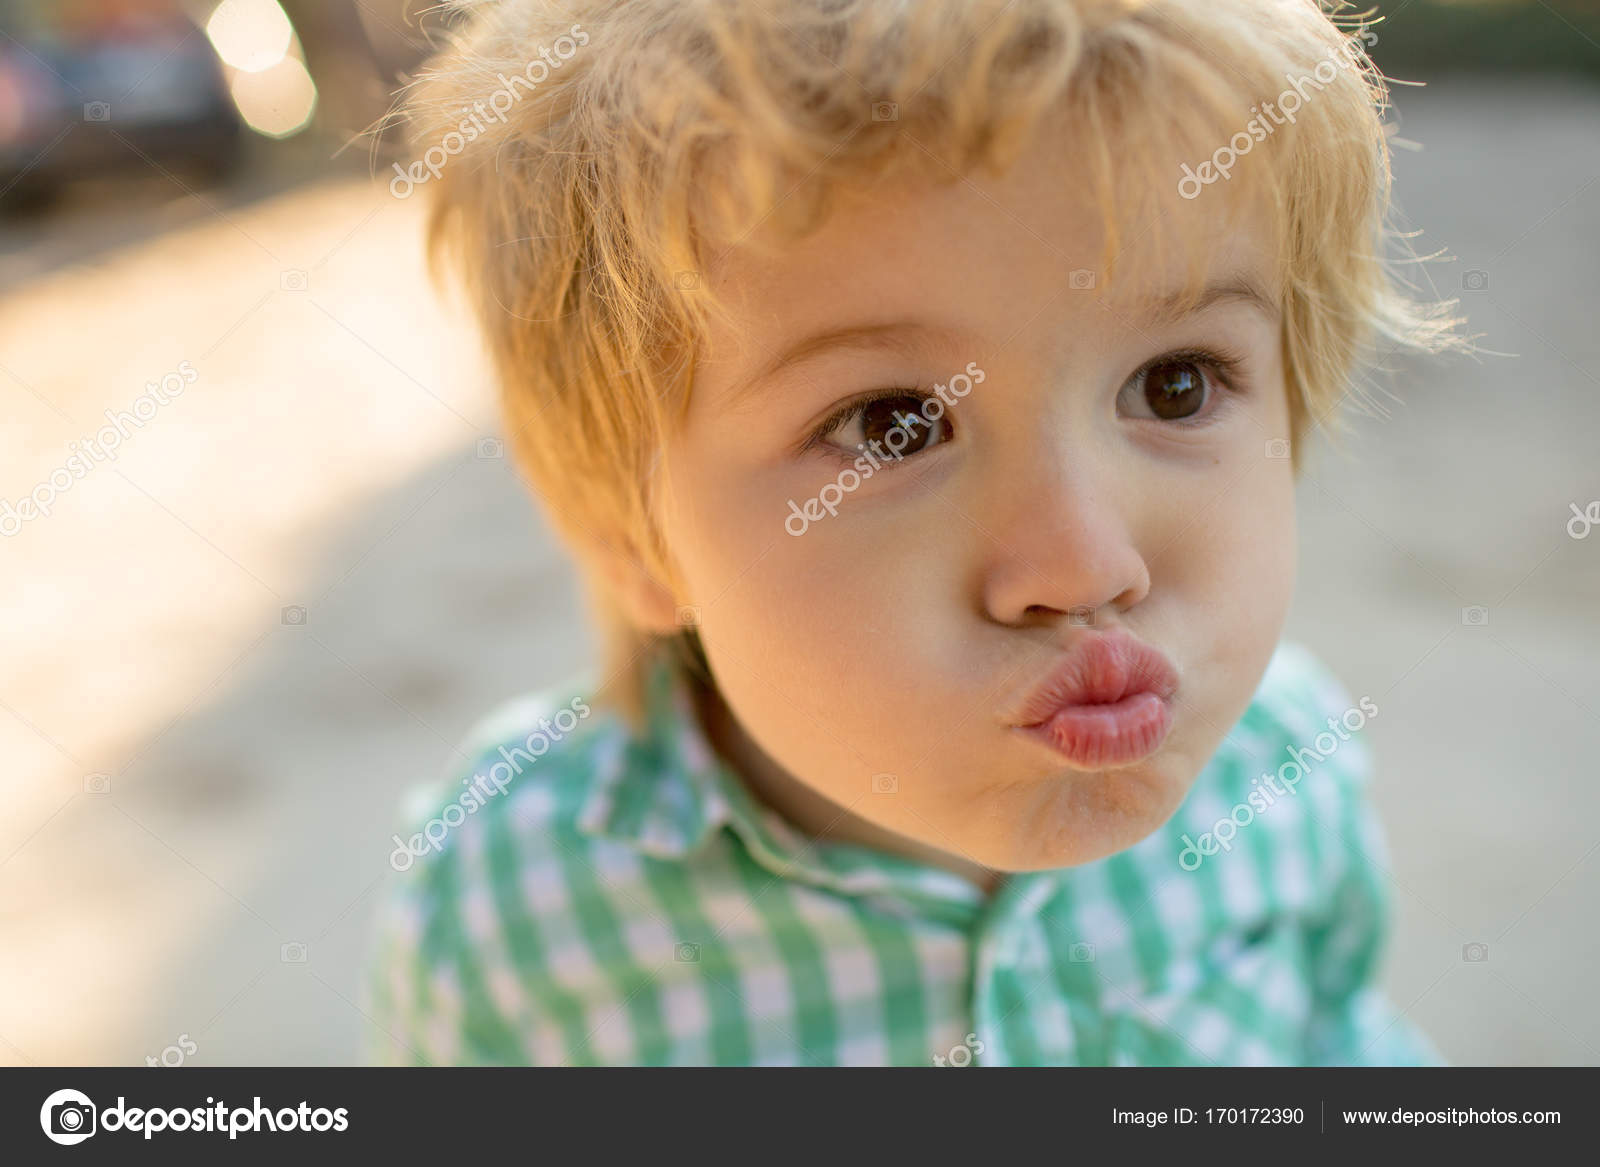 kiss, kissing boy. boy in love, funny face of cute kid close up